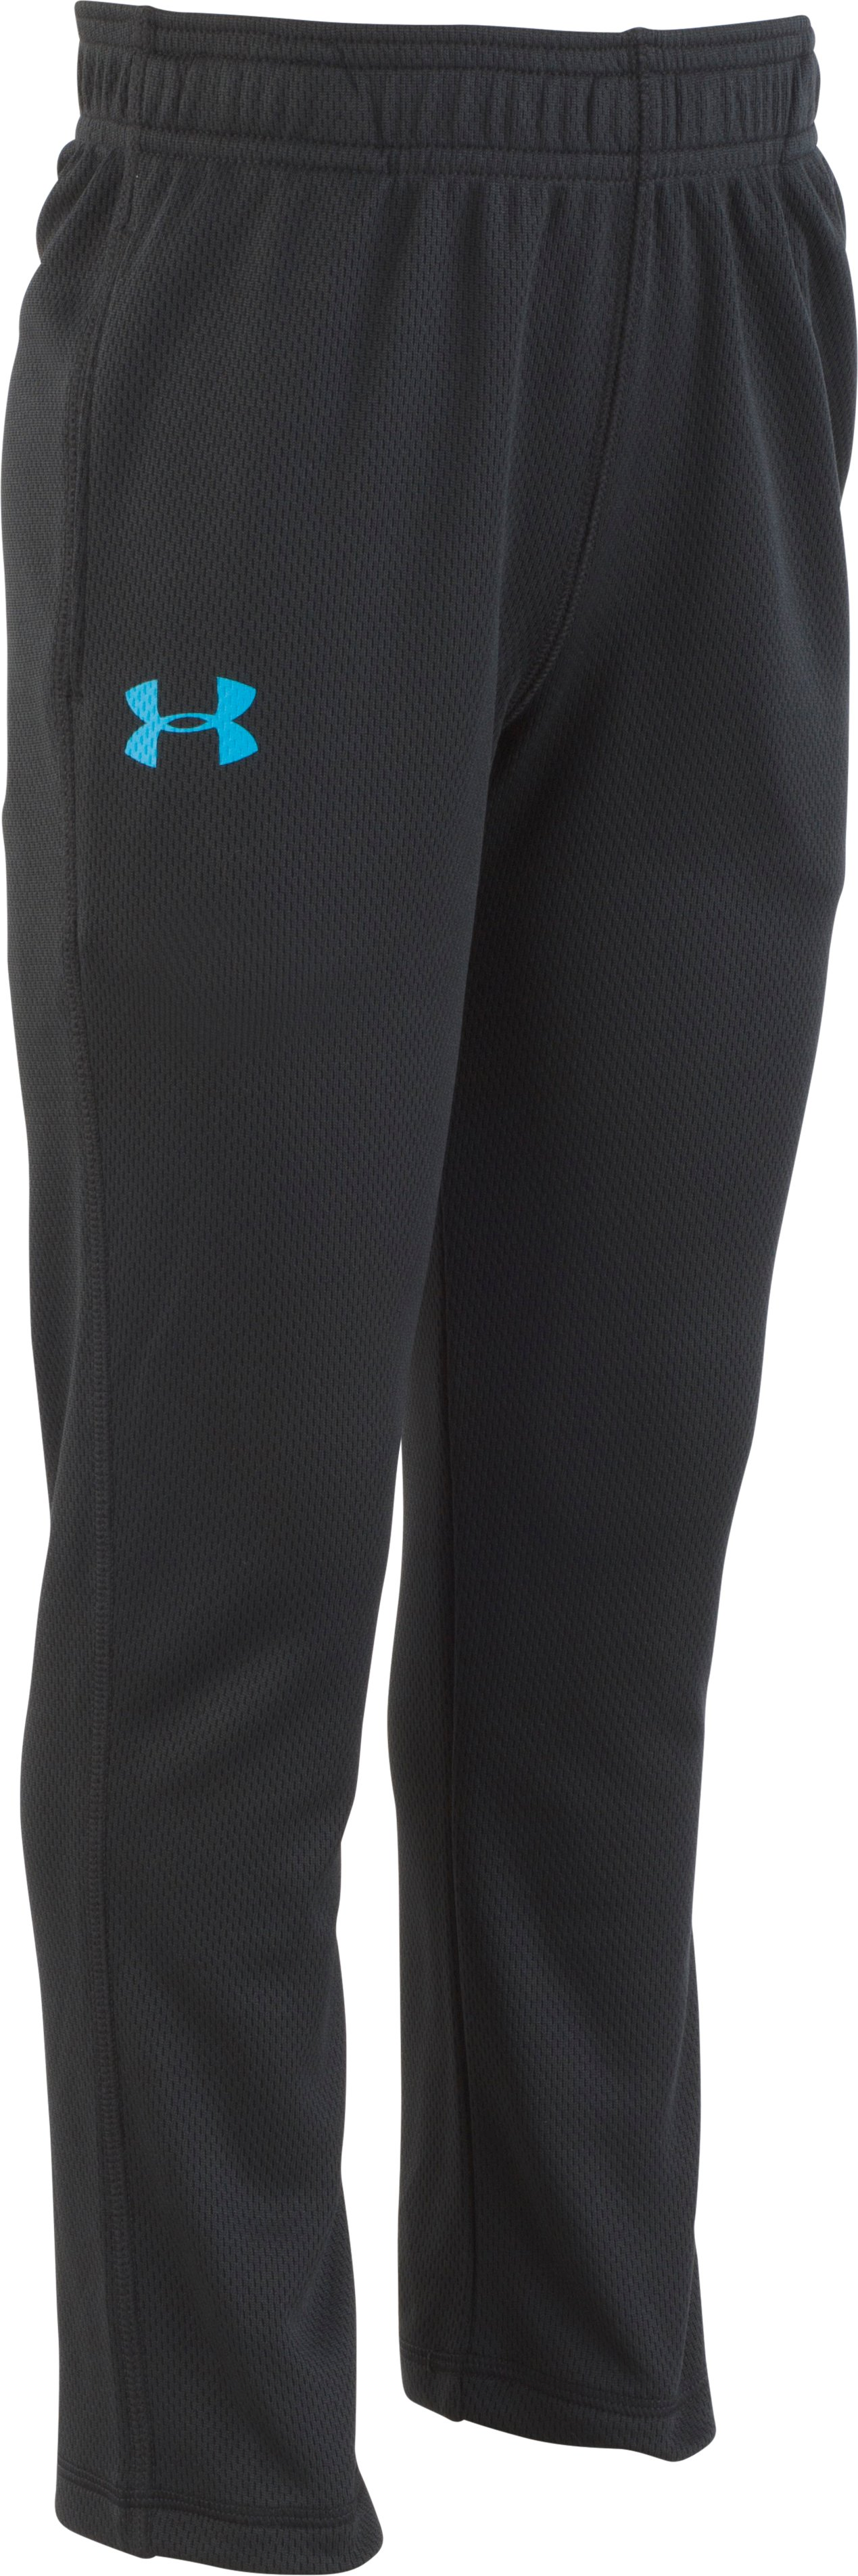 Boys' Toddler UA Brute Pants, Black , Laydown